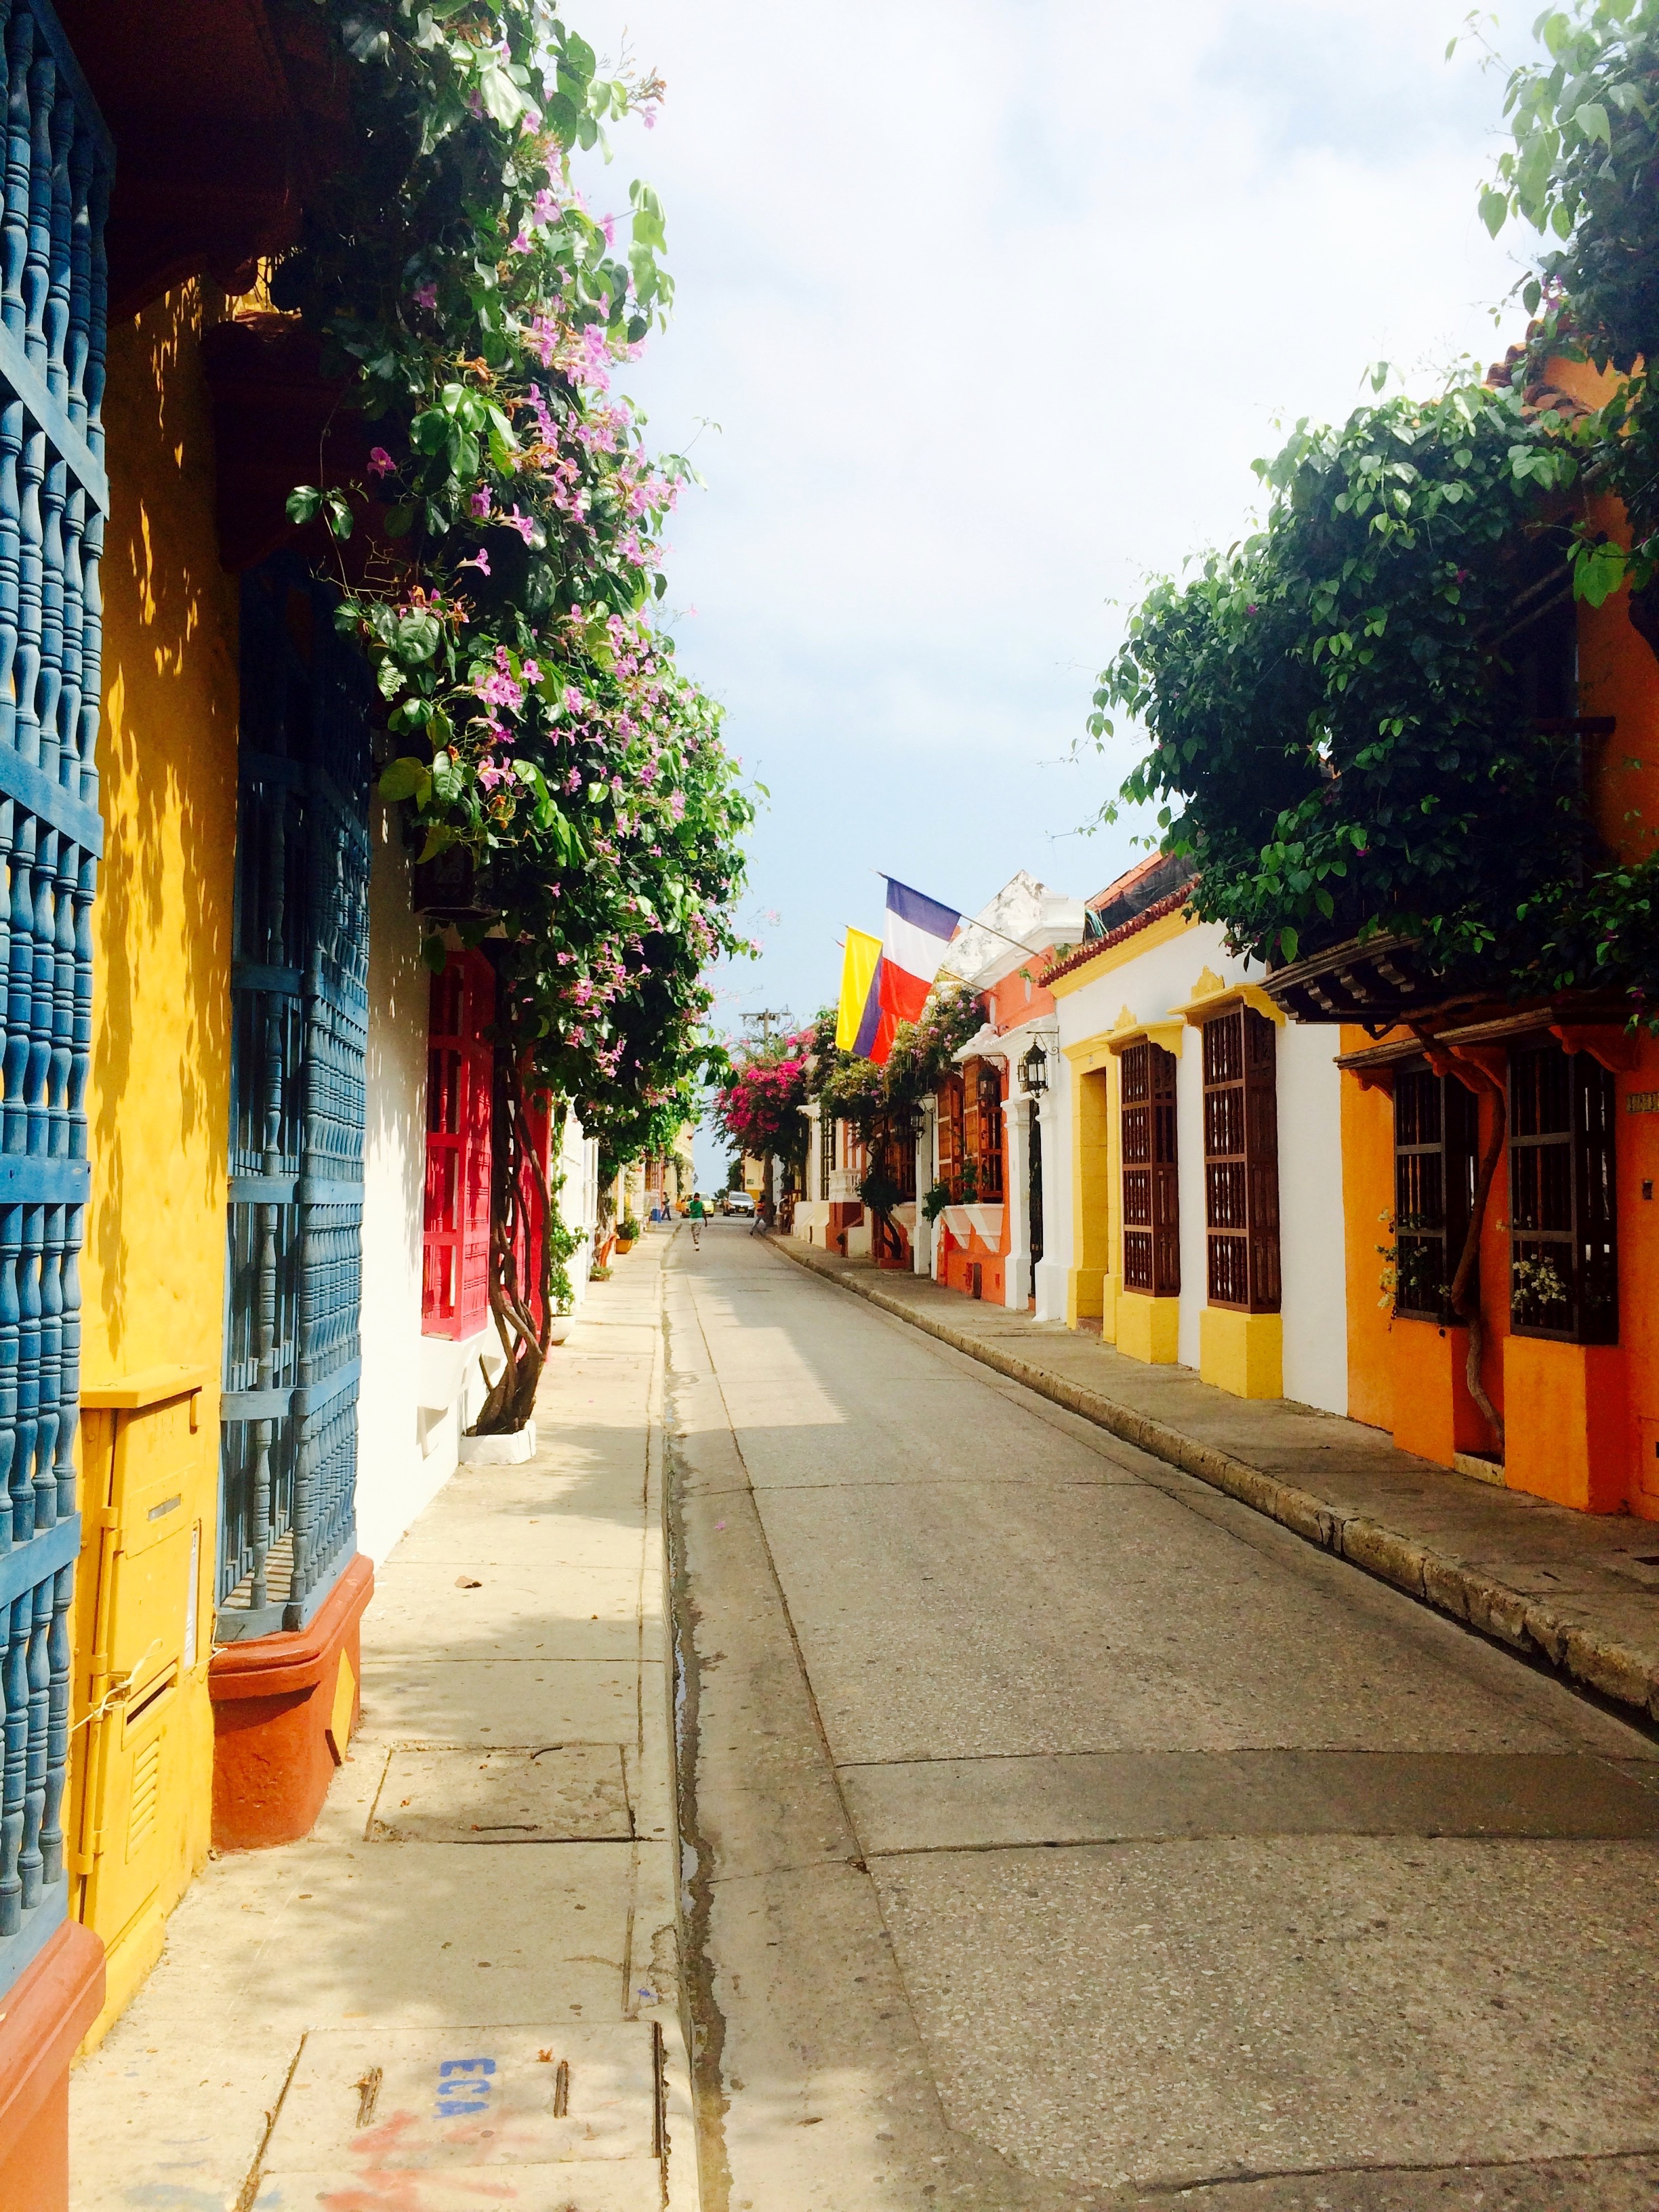 A typical street in Cartagena